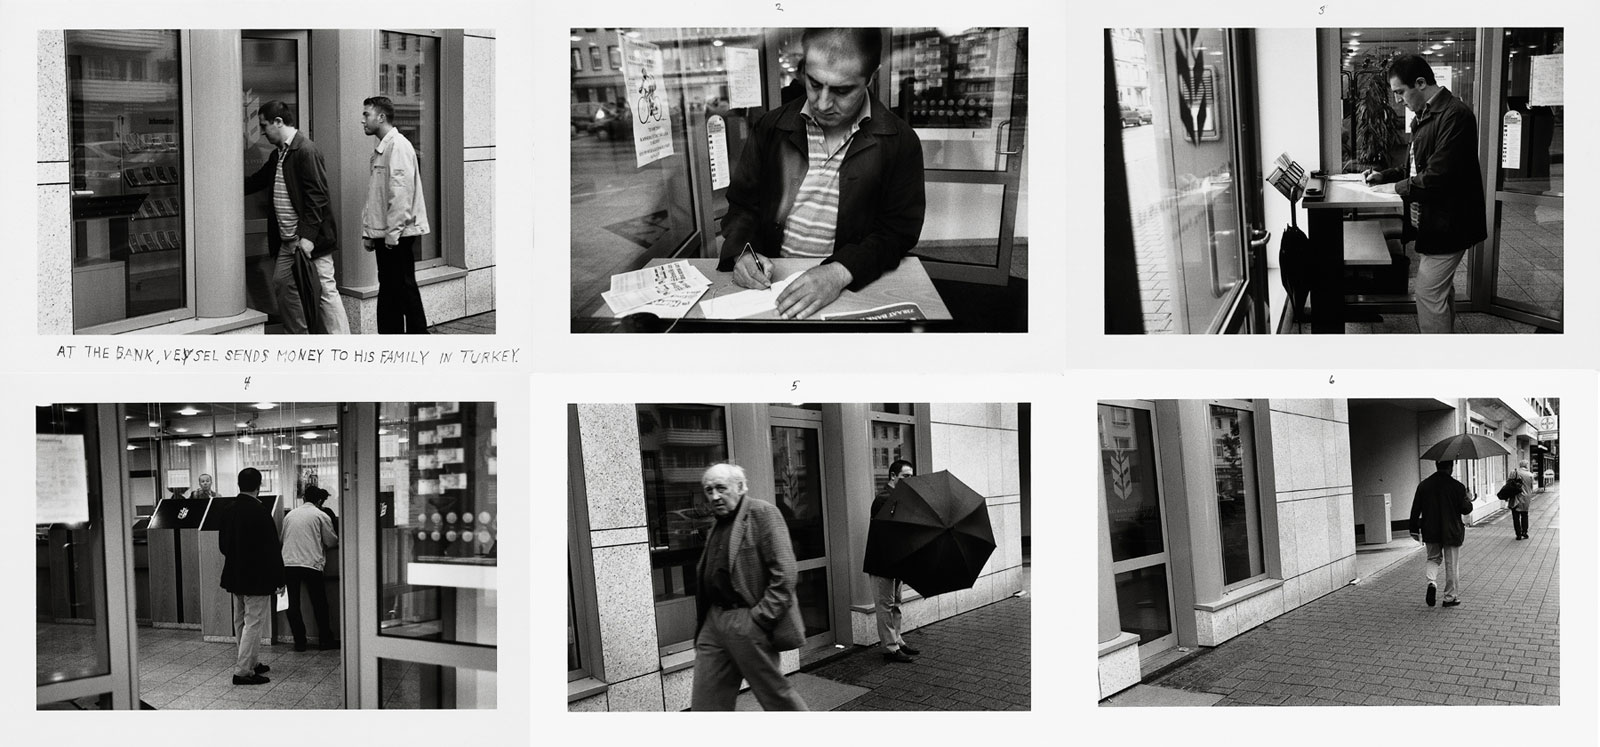 AT THE BANK, VEYSEL SENDS MONEY TO HIS FAMILY IN TURKEY., Duisburg, 2001